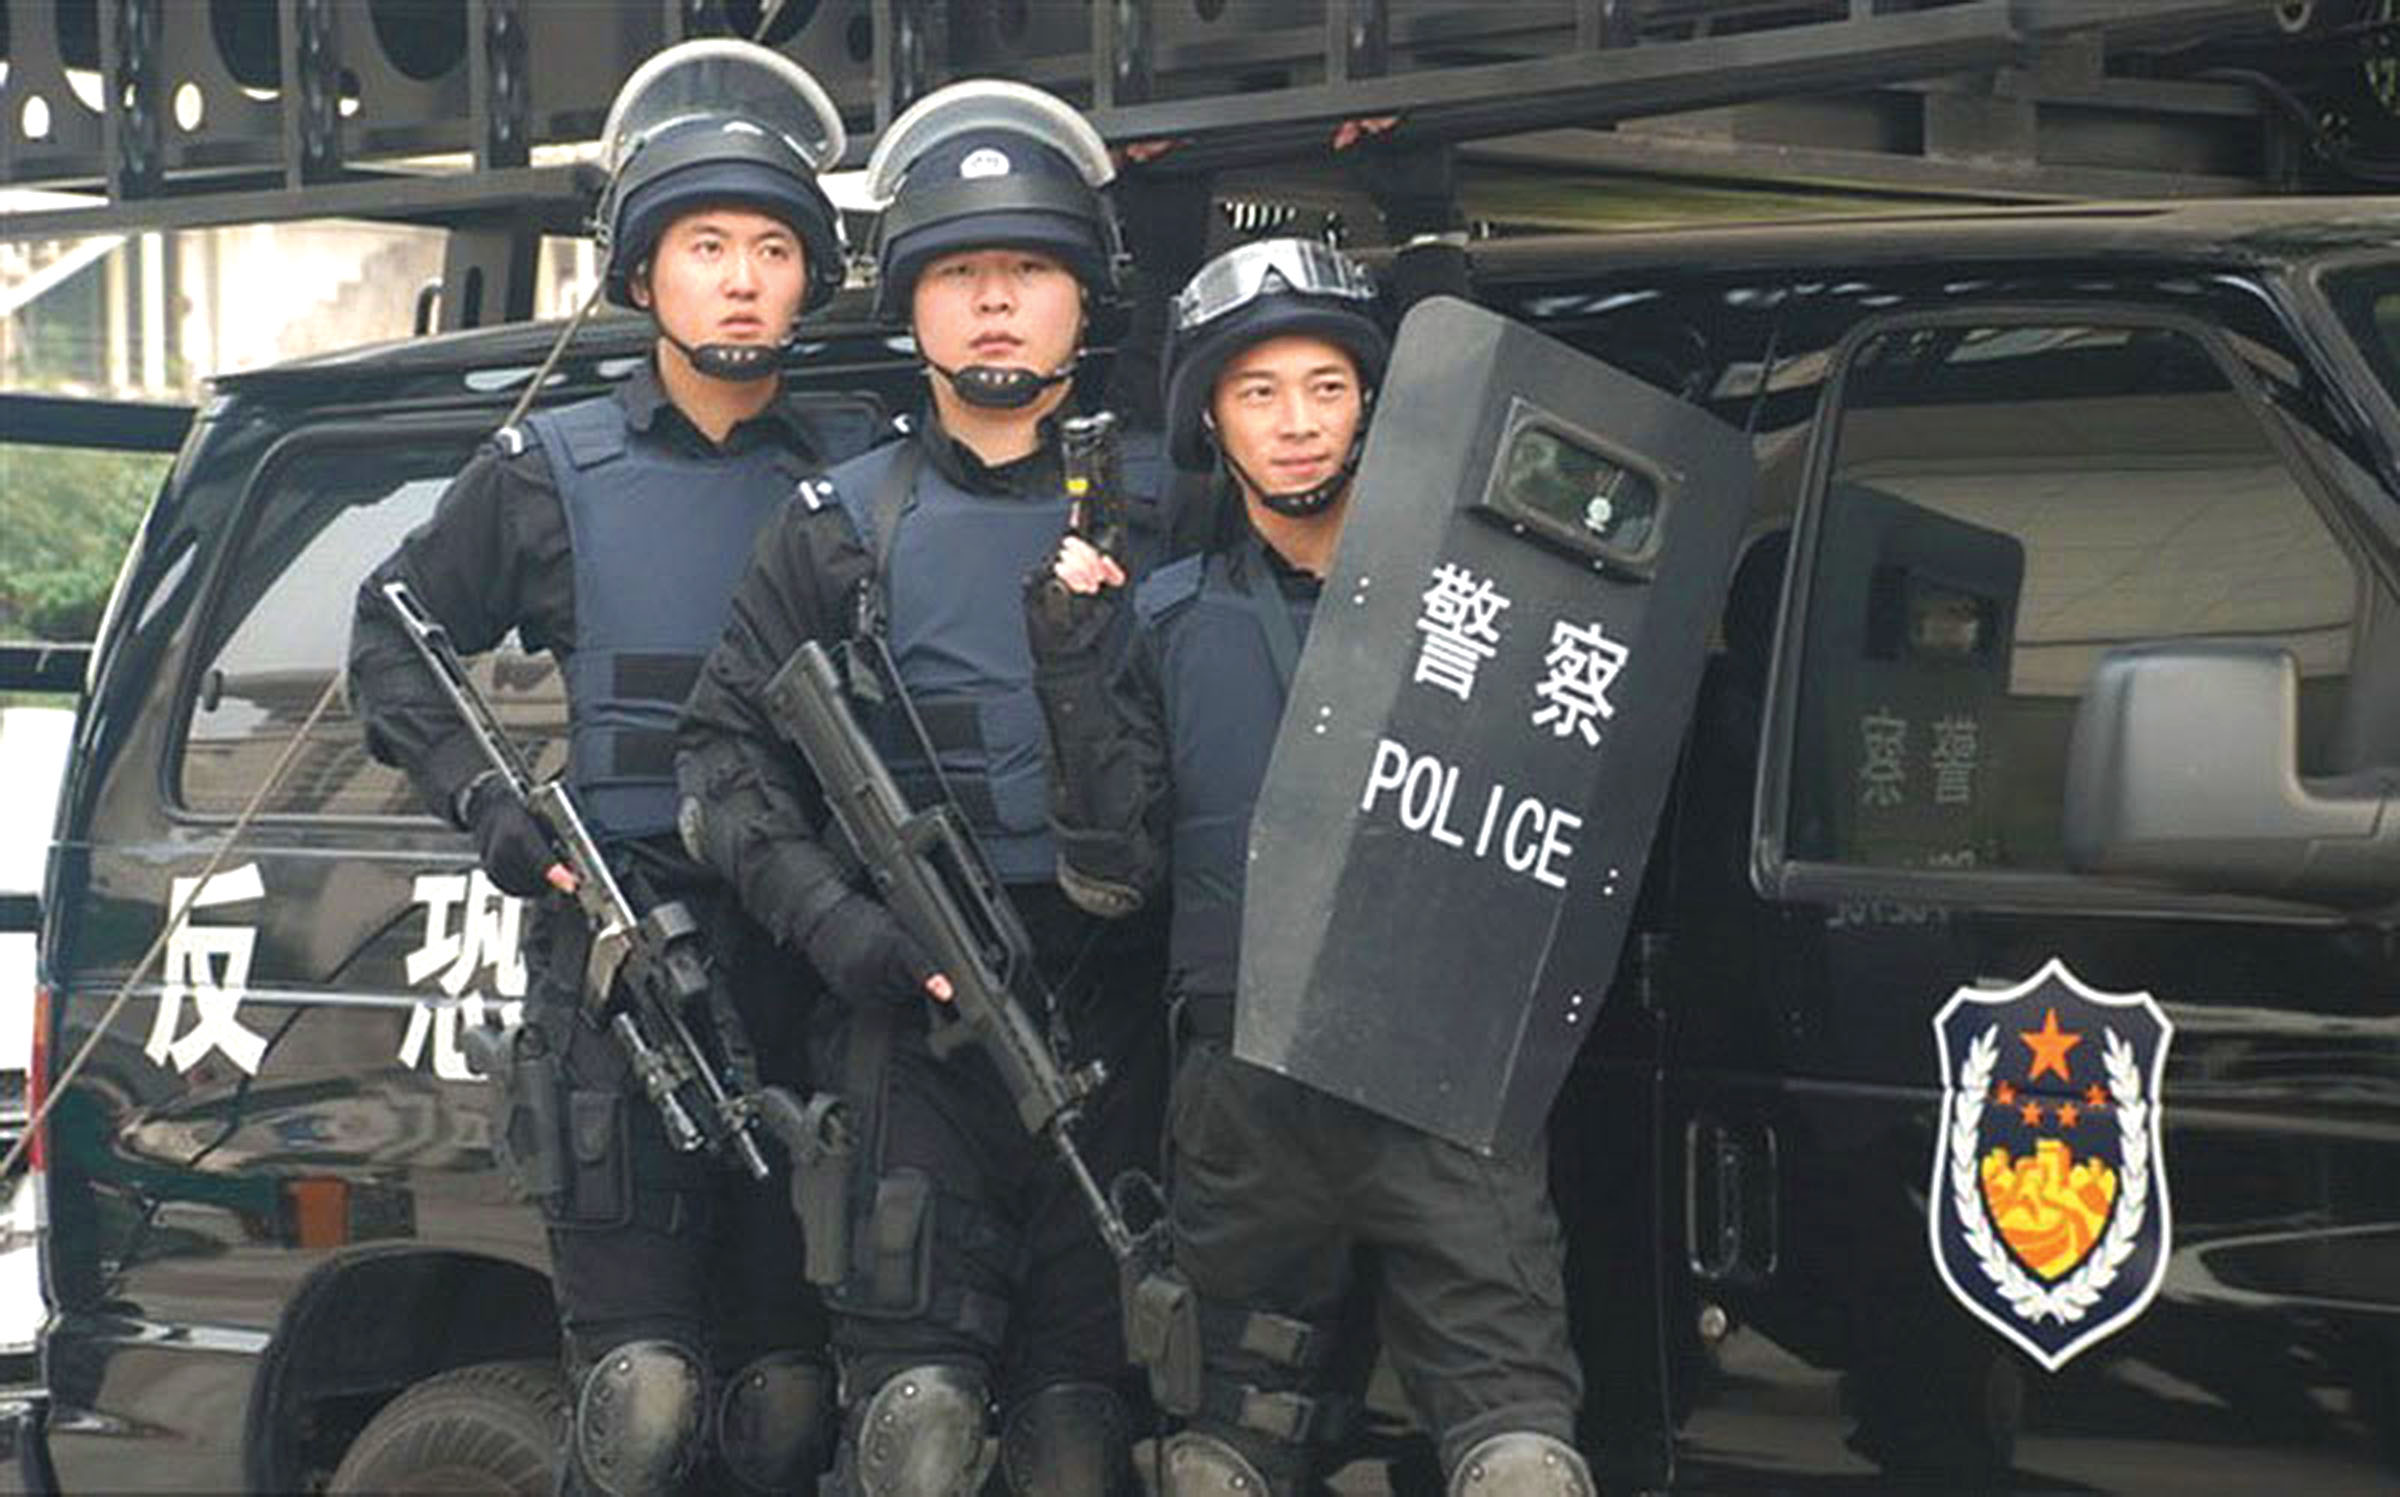 The Special Police Units (SPU) have an increased role in civil unrest and political demonstrations, often blocking journalist's access. Photo: unit_1.bp.blogspot.com